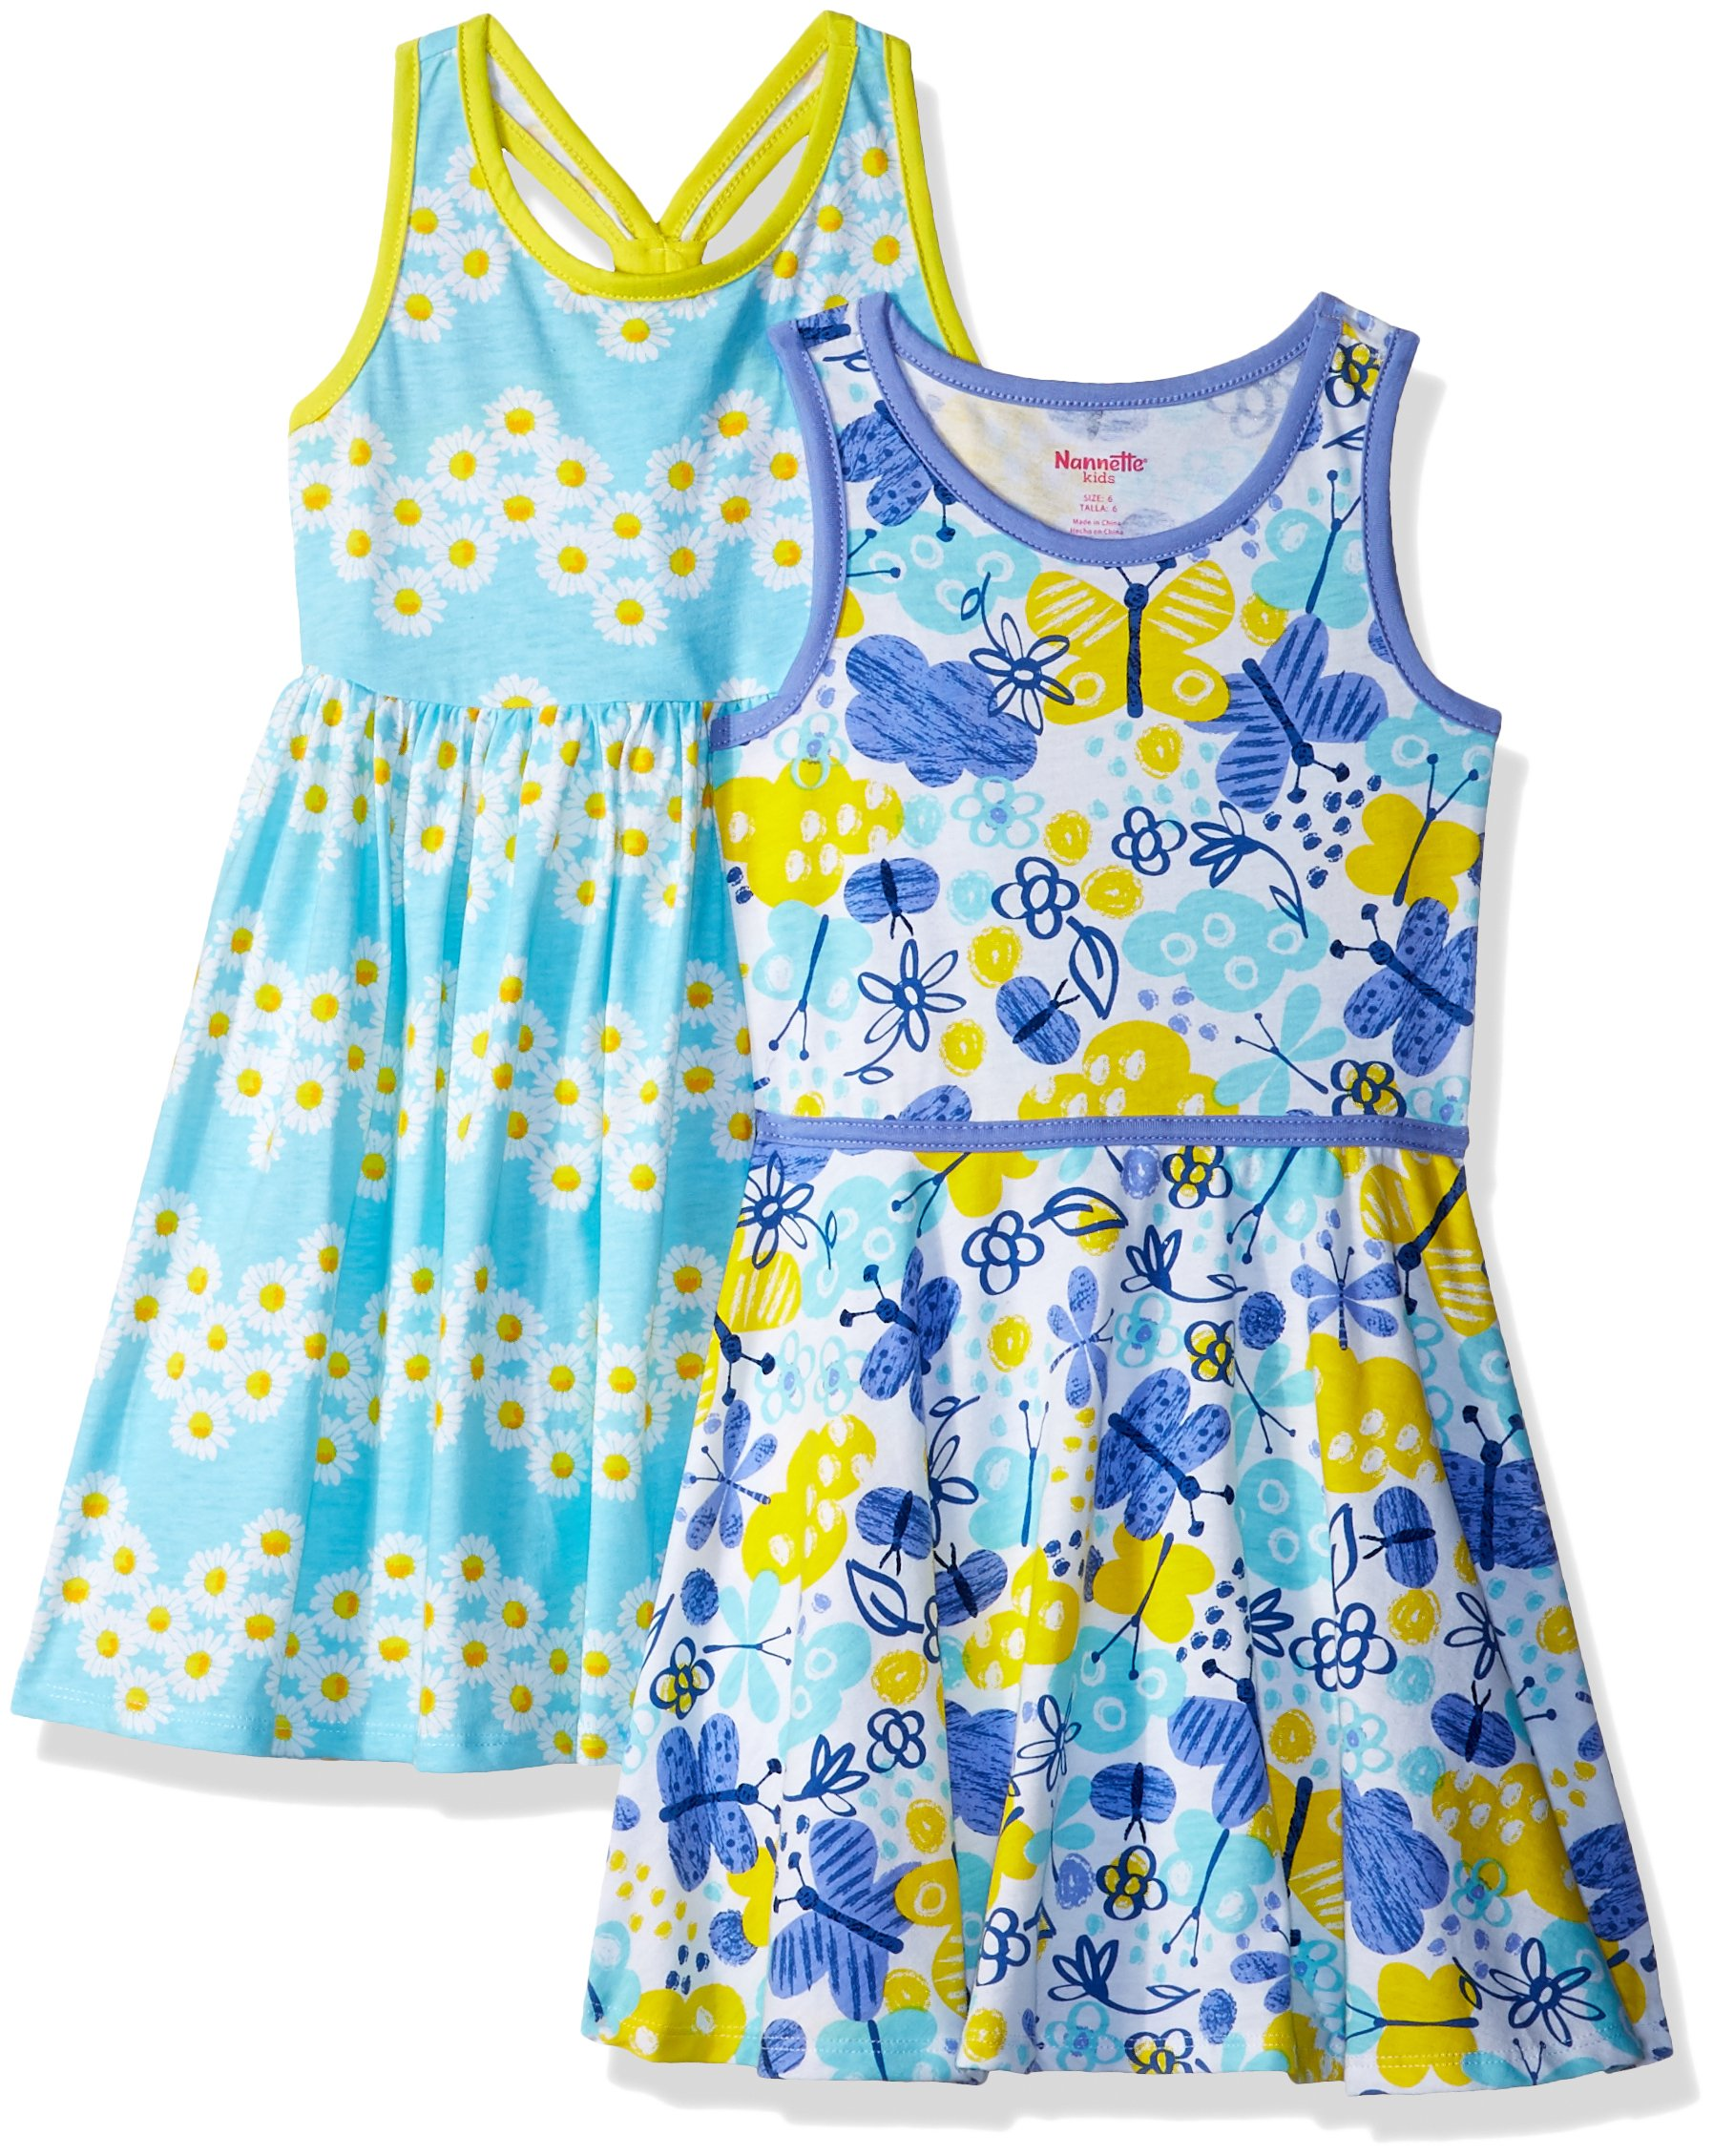 Nannette Little Girls' 2 Pack Knit Dresses, Aqua, 6